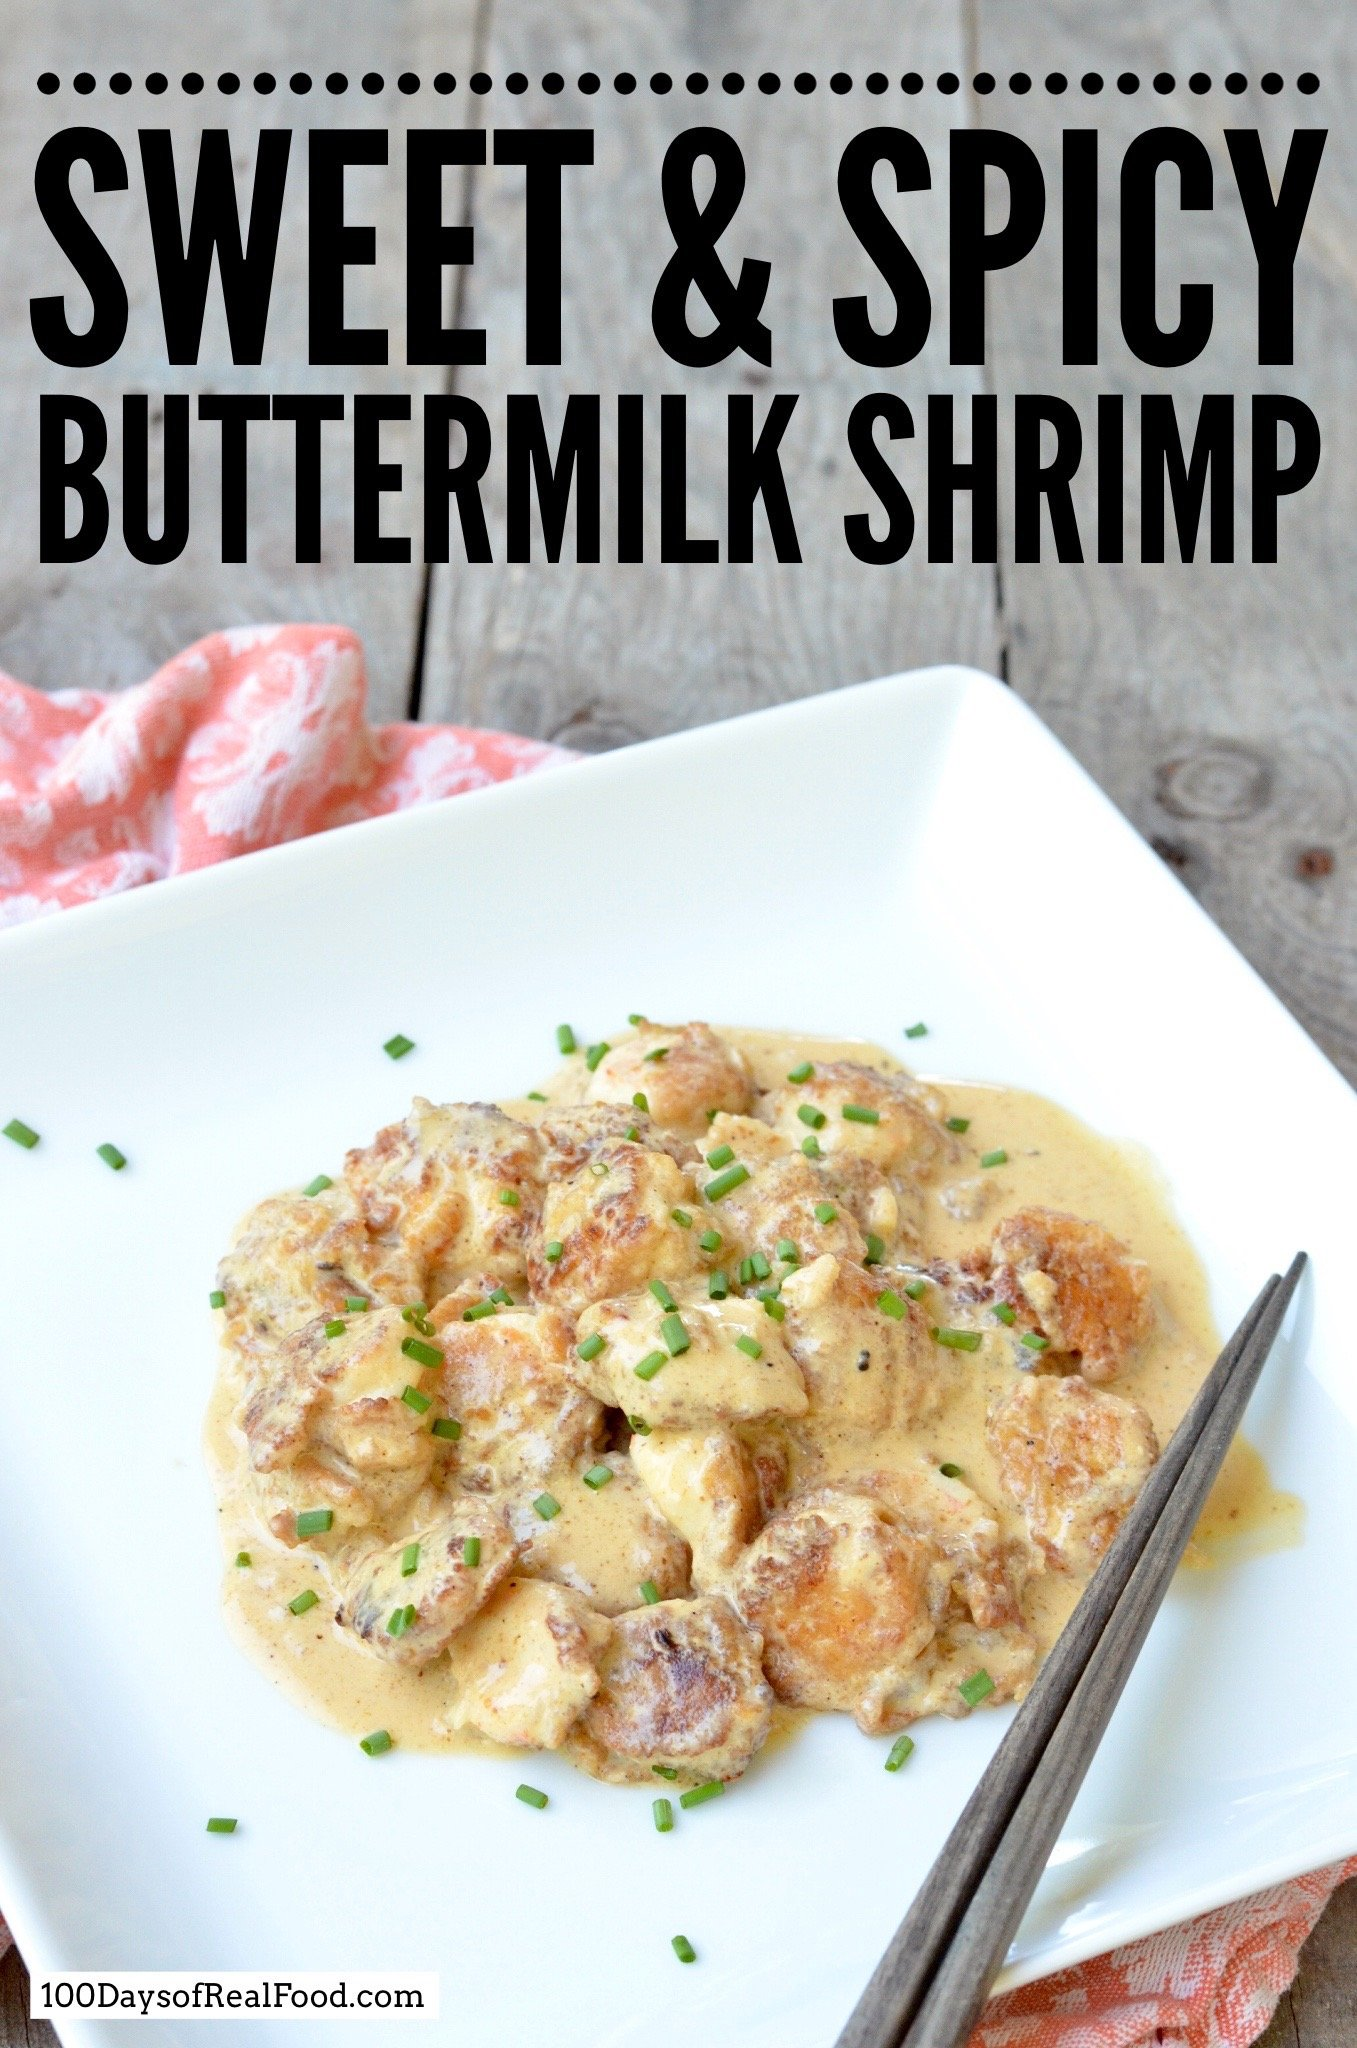 Sweet and Spicy Buttermilk Shrimp on 100 Days of Real Food